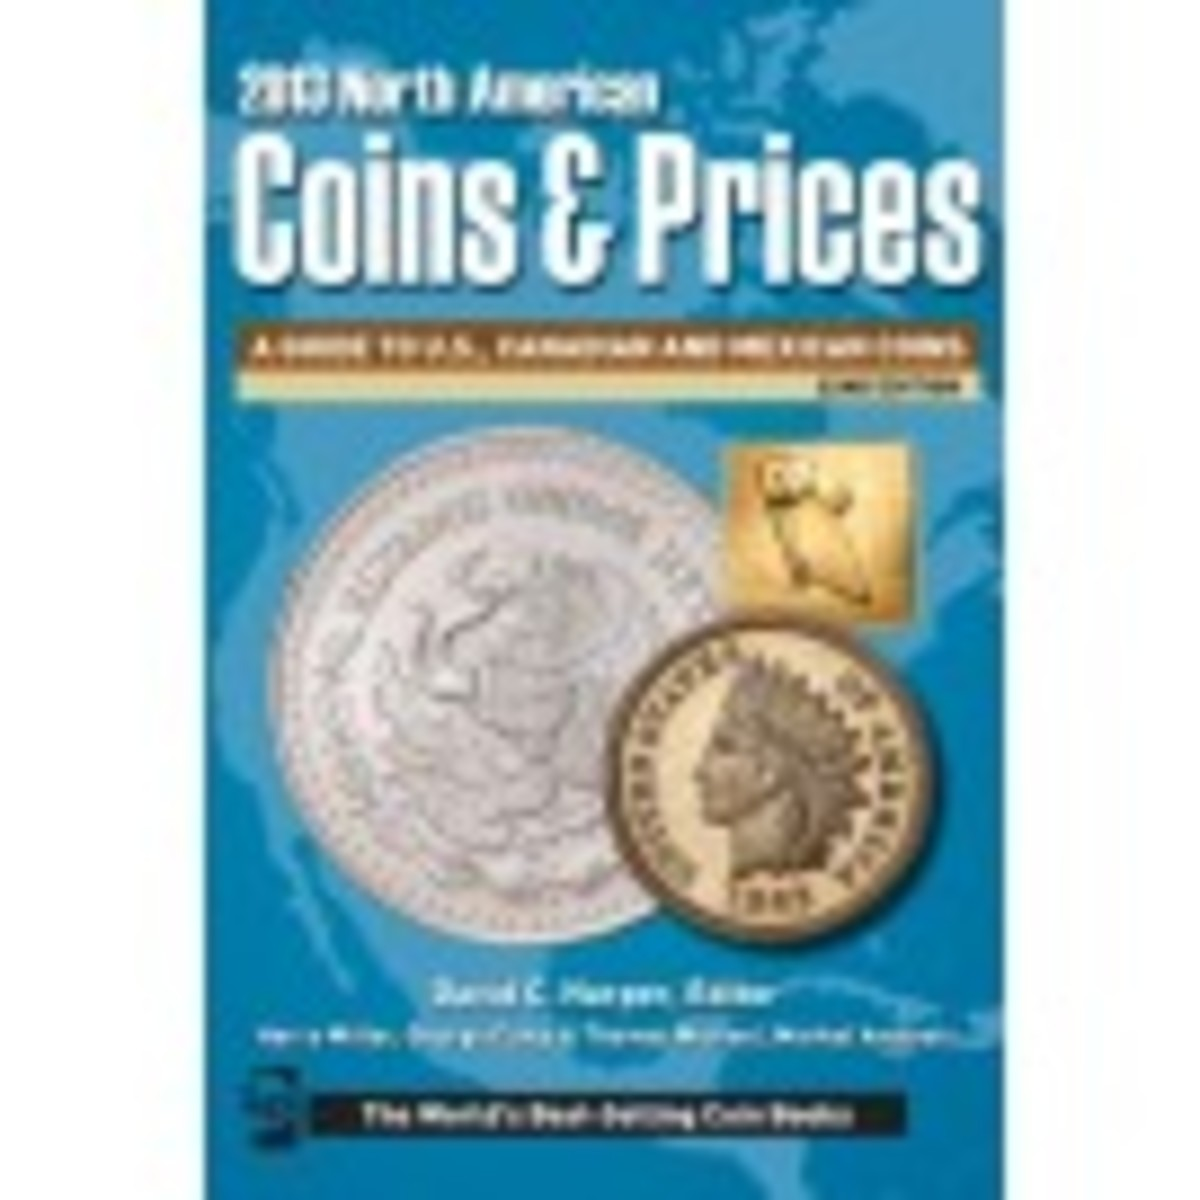 2013 North American Coins & Prices,